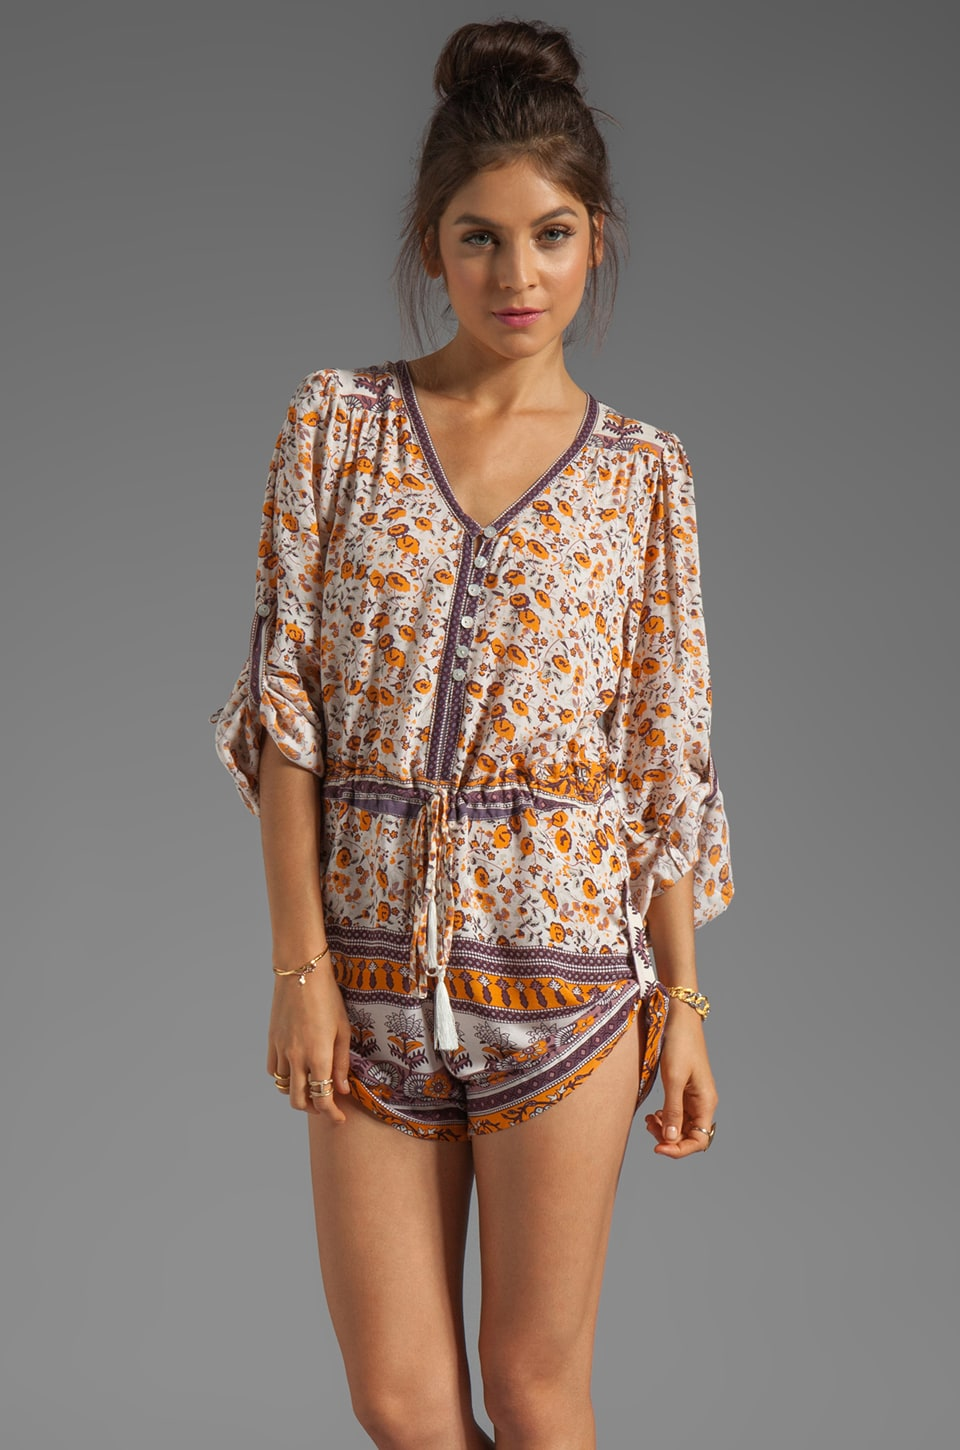 Spell & The Gypsy Collective Gypsy Love Playsuit in Orange Blossom